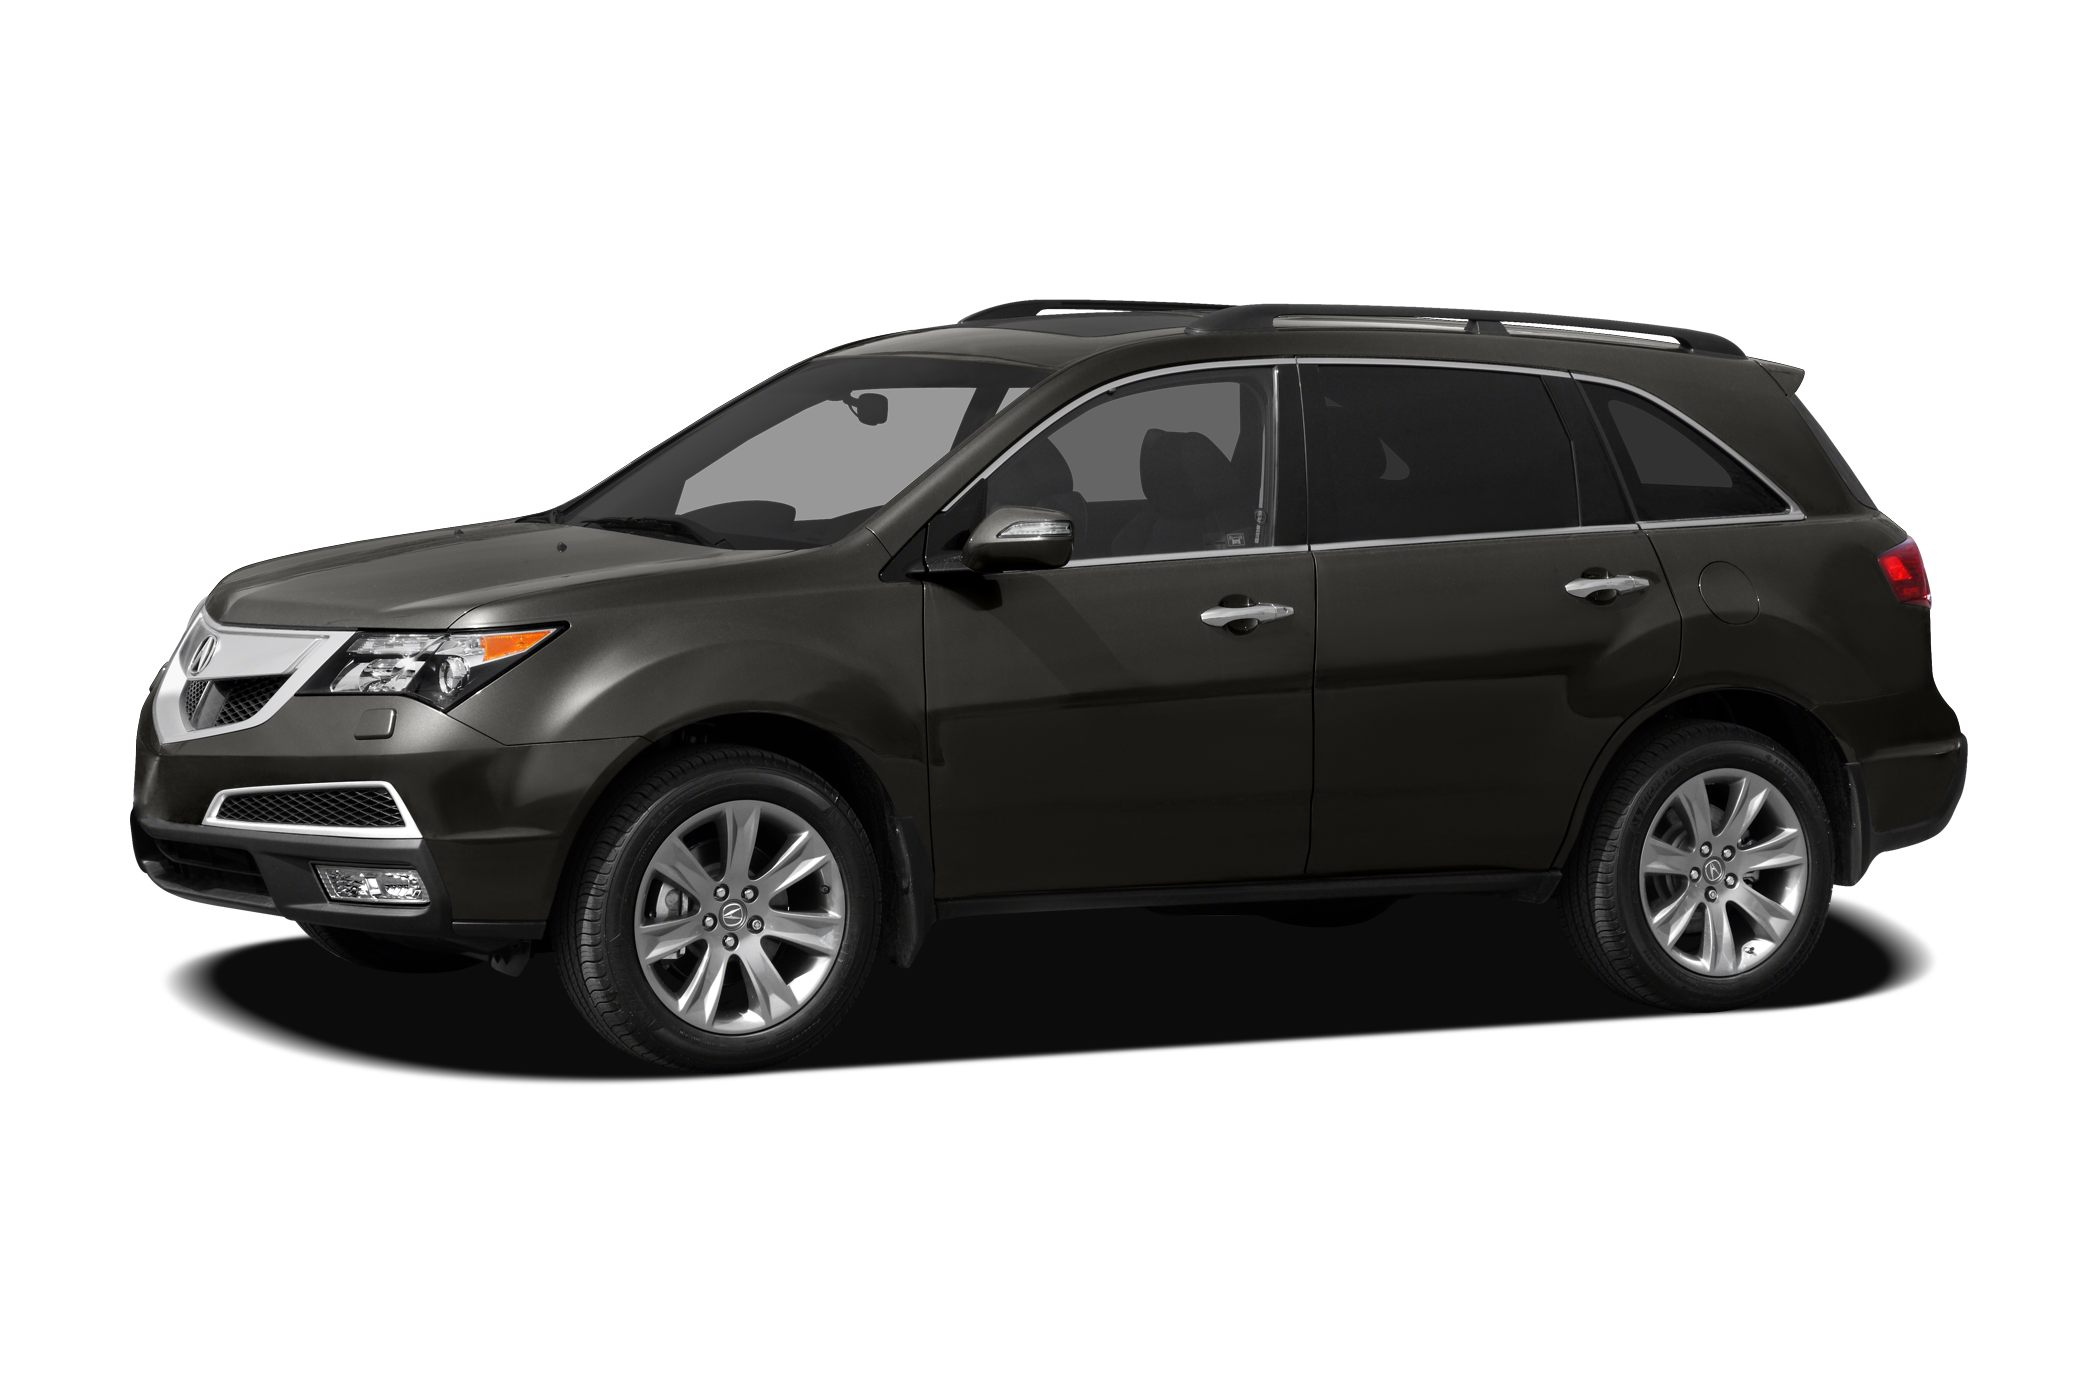 2012 Acura MDX 3.7L SUV for sale in Bridgewater for $30,999 with 30,053 miles